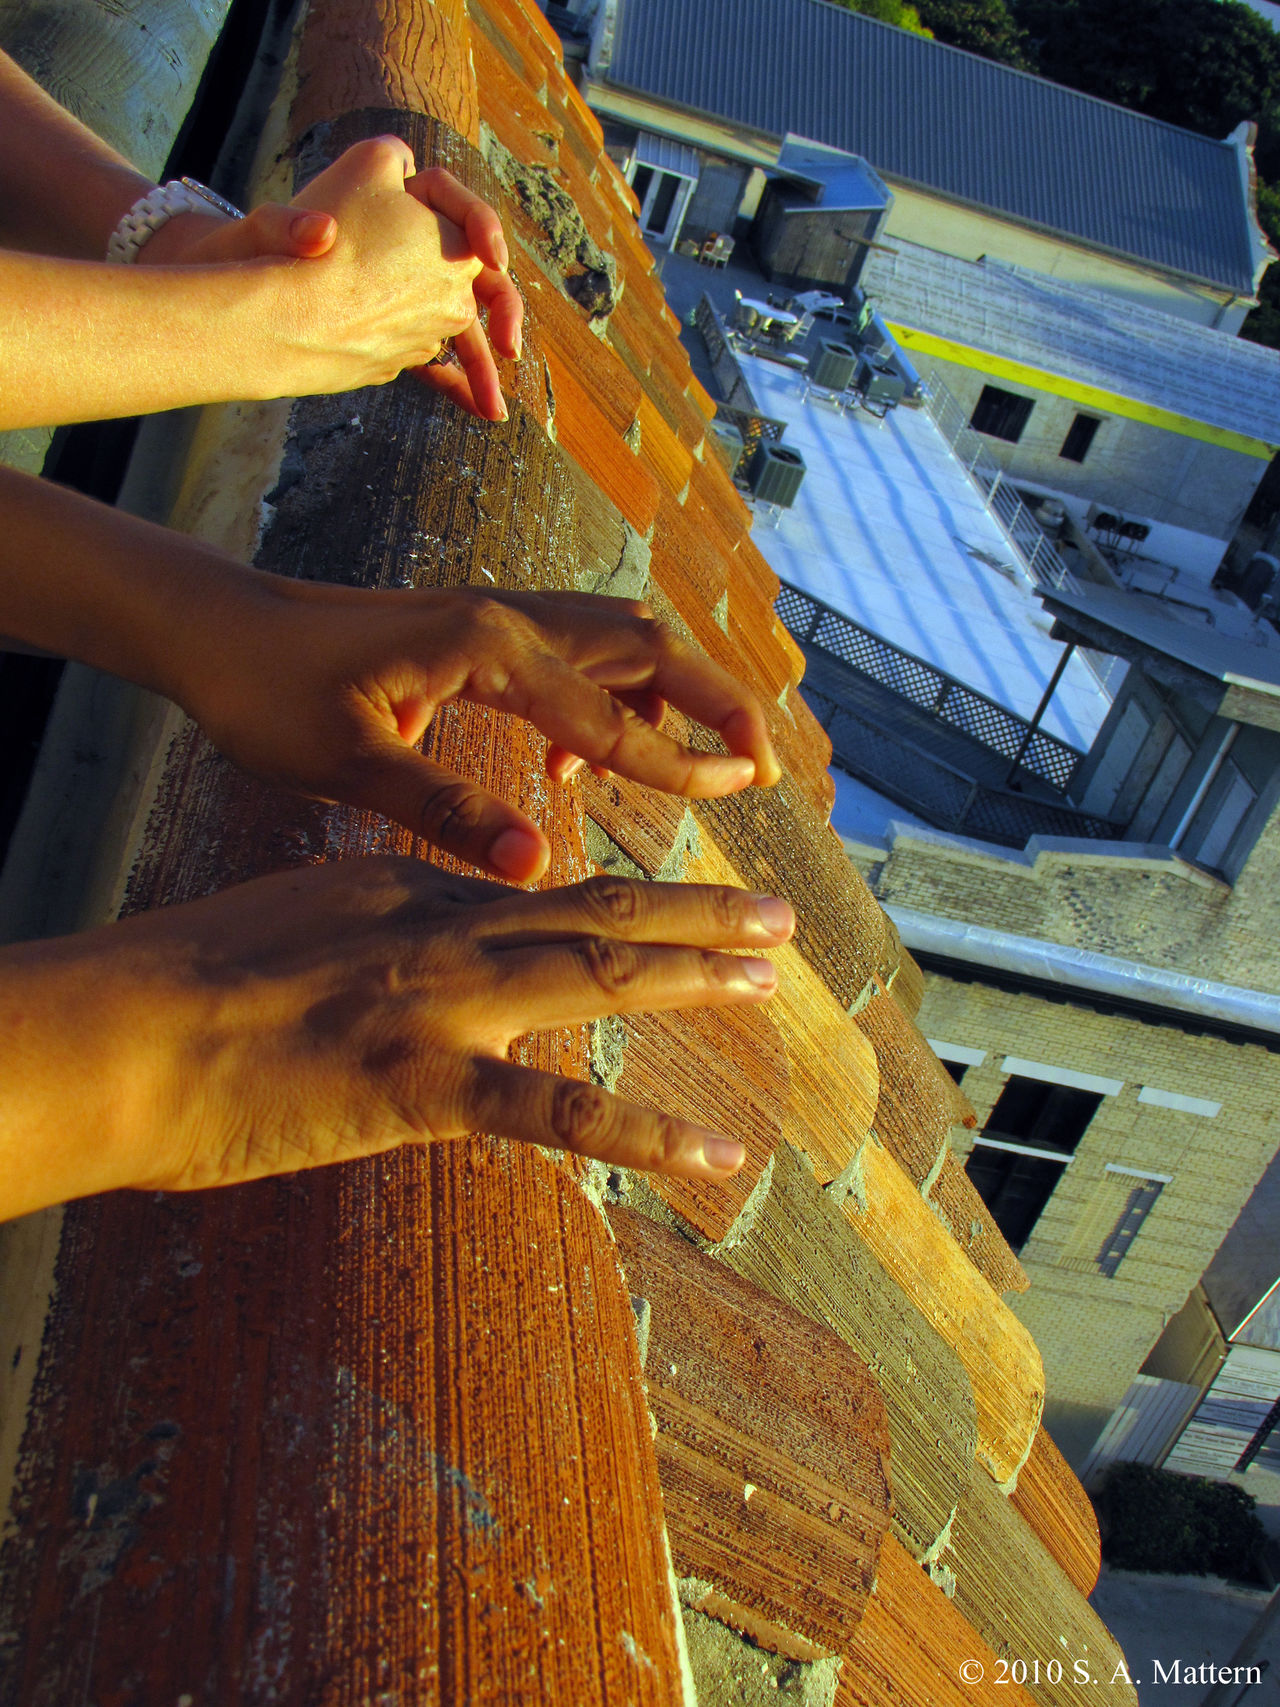 Roof Top View Adult Clay Tile Roof Close-up Conversation Friends Friendship Golden Hour Human Body Part Human Hand Key West Key West At Night Meditation Place Multi Cultural Only Women People Rooftop View  Rooftops Sunset Textured  Togetherness Women